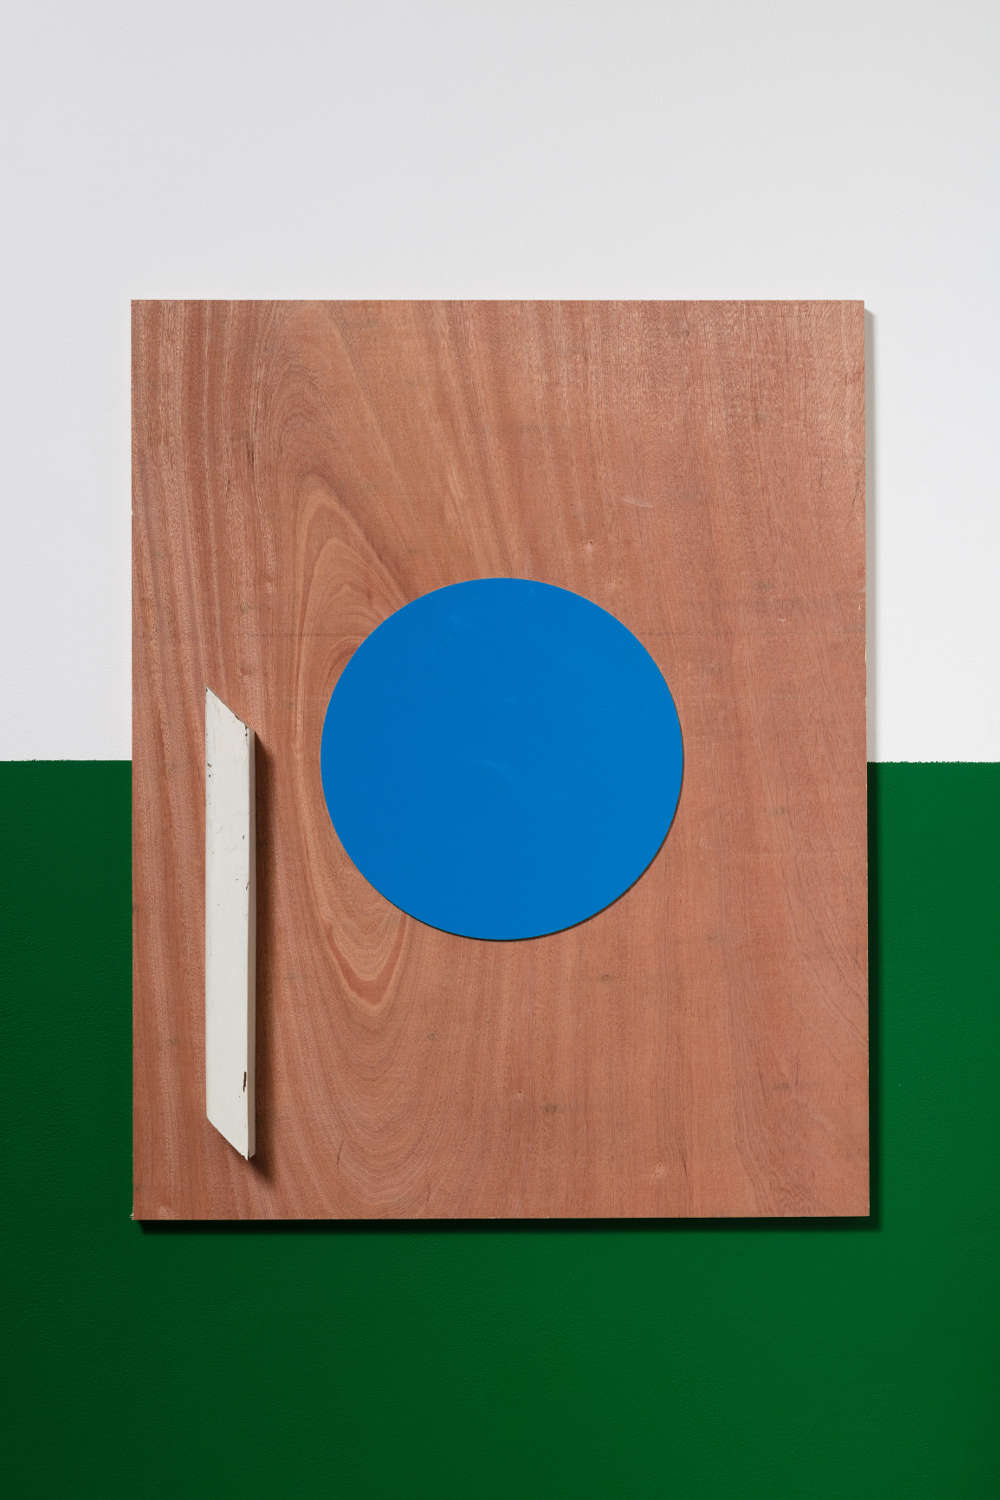 John Nixon, Untitled, (Blue Circle), 2018 (London). Enamel and timber on plywood, 75 x 60cm  White / Green wall